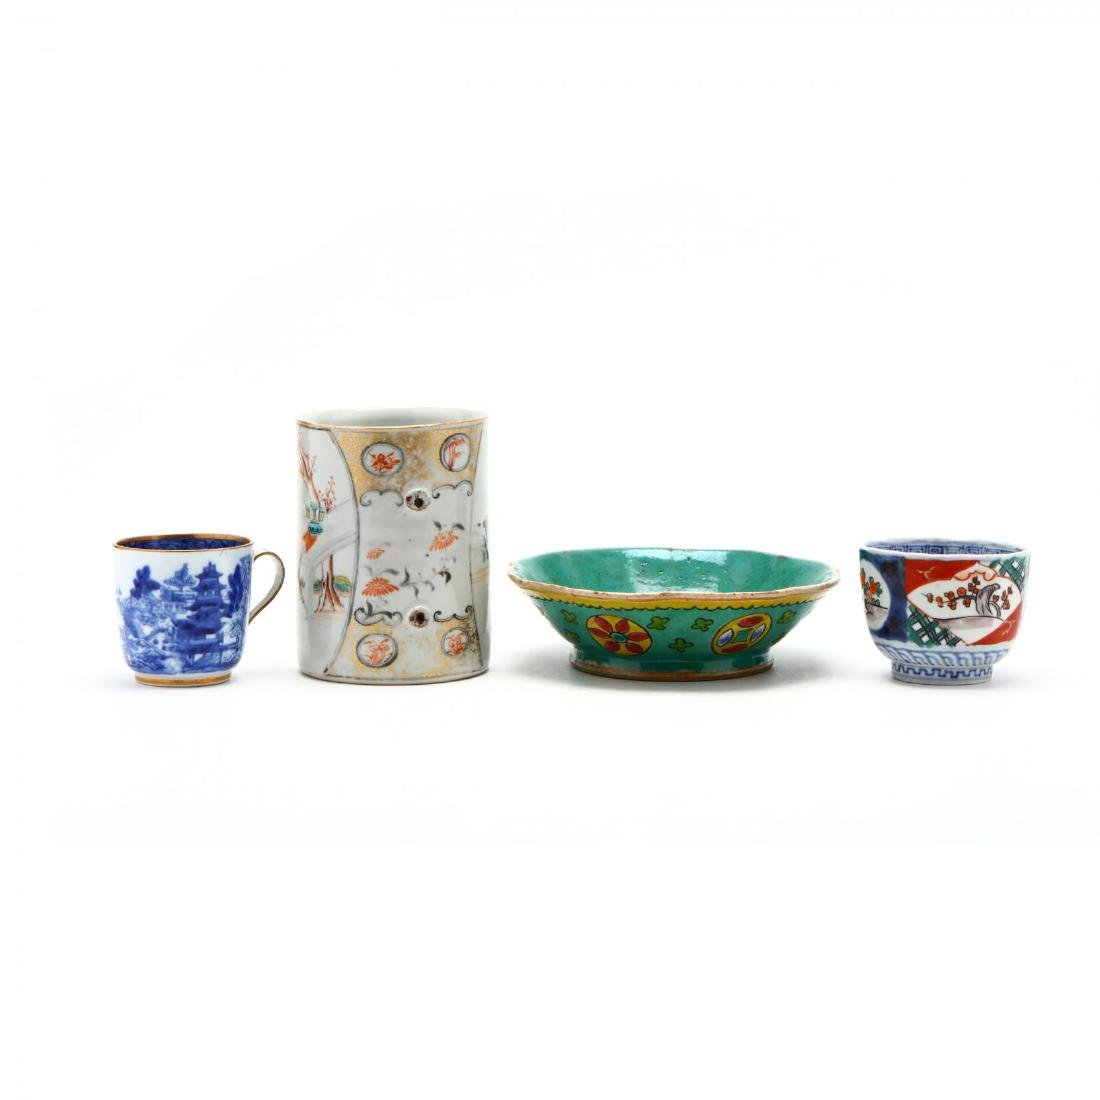 A Large Chinese Charger and Decorative Porcelain Items - 7